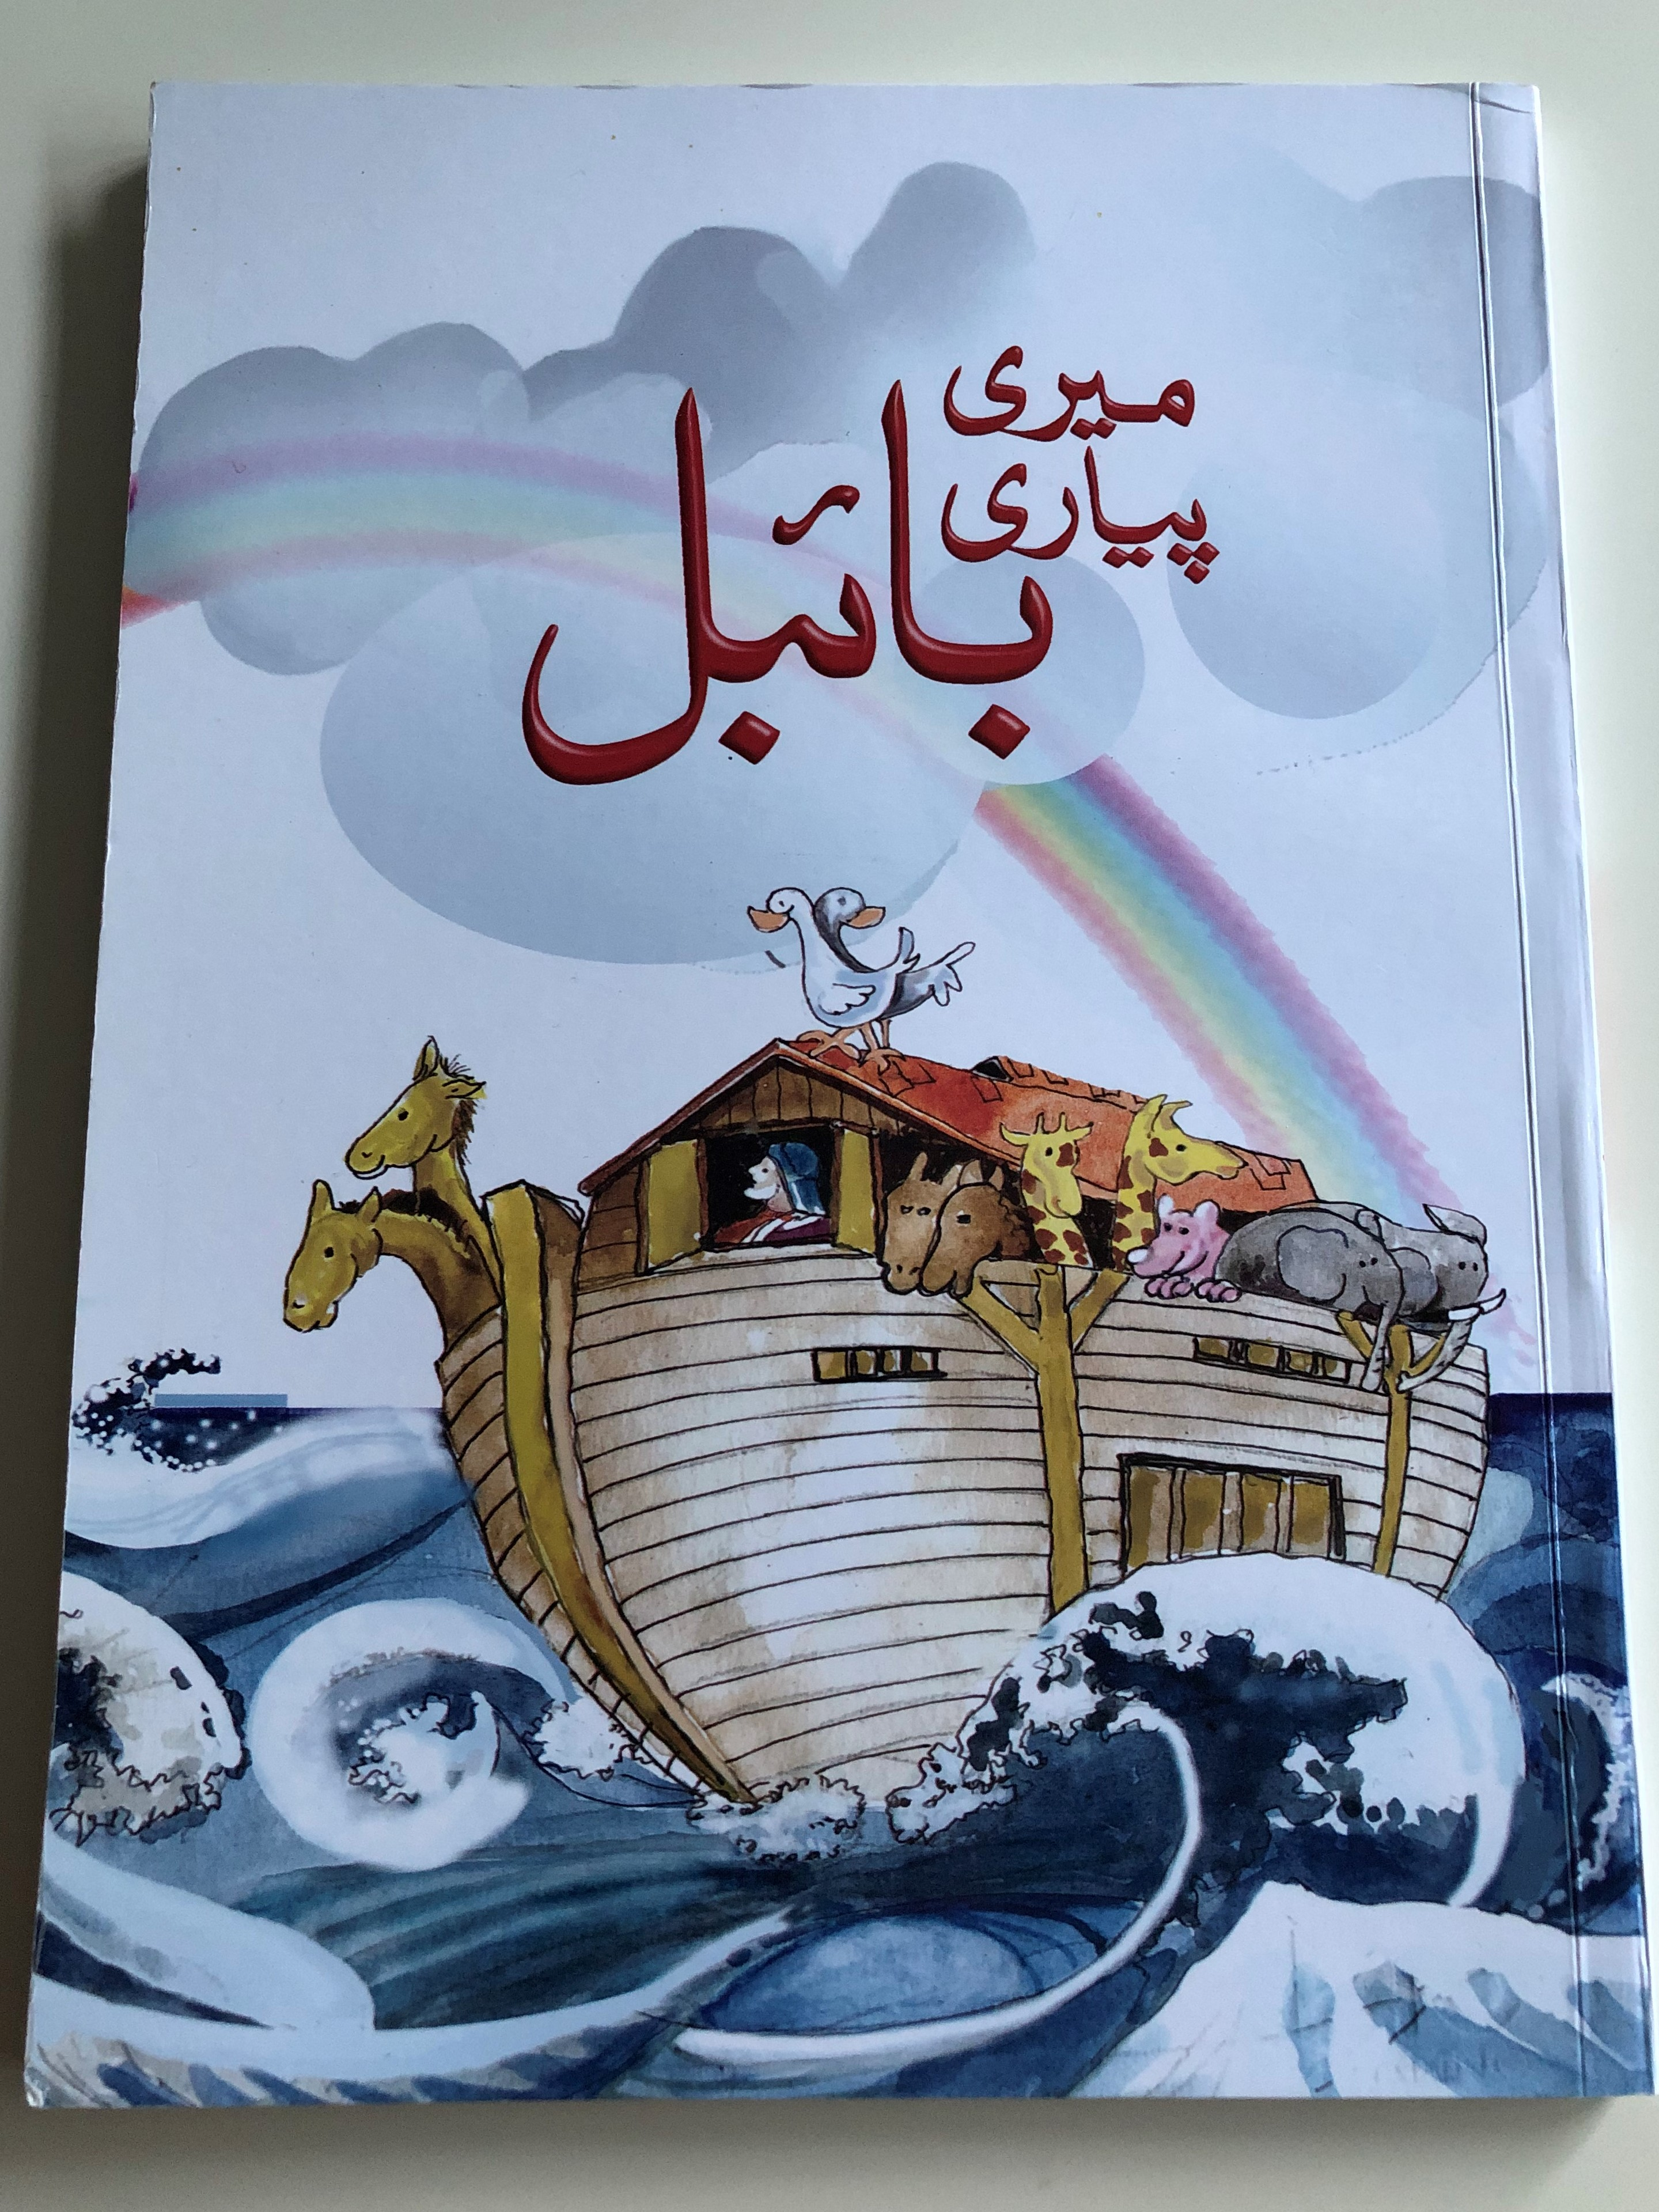 urdu-children-s-picture-bible-st.-paul-communication-centres-pakistan-paperback-2016-color-illustrations-great-gift-for-children-1-.jpg